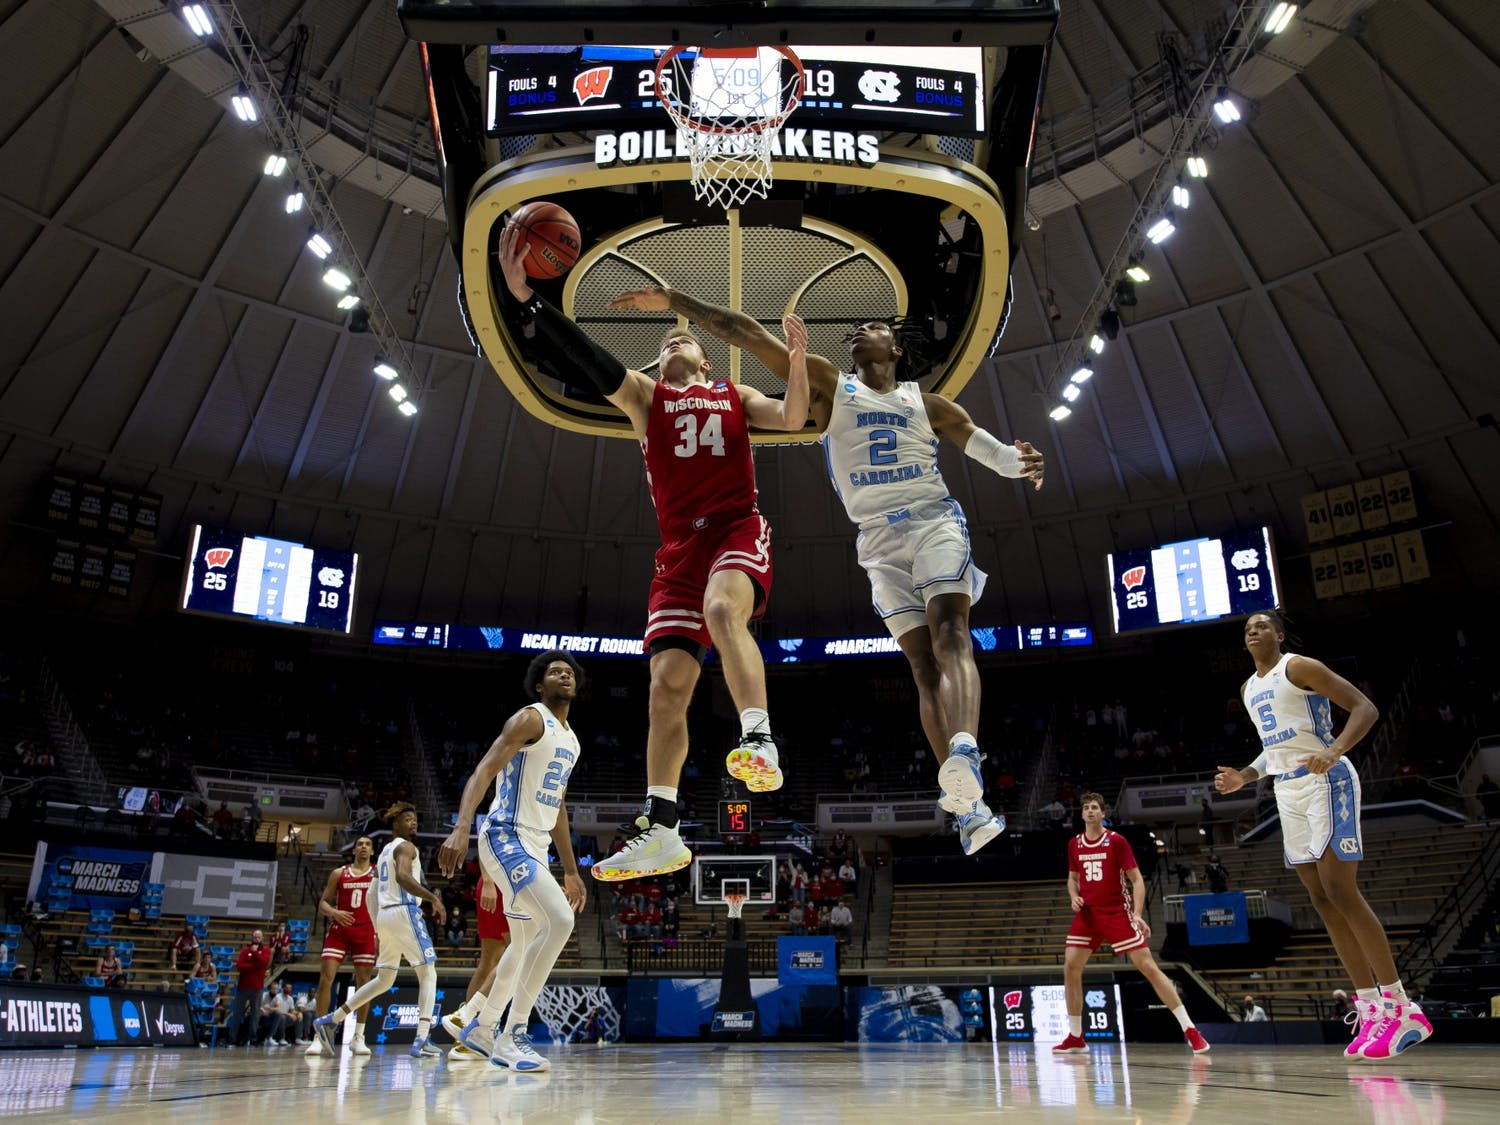 WEST LAFAYETTE, IN - MARCH 19: Brad Davison drives for a layup as Caleb Love of North Carolina defends in the first round of the 2021 NCAA Division I Men's Basketball Tournament held at Mackey Arena on March 19, 2021 in West Lafayette, Indiana. Photo by Andy Hancock/NCAA Photos/NCAA Photos via Getty Images